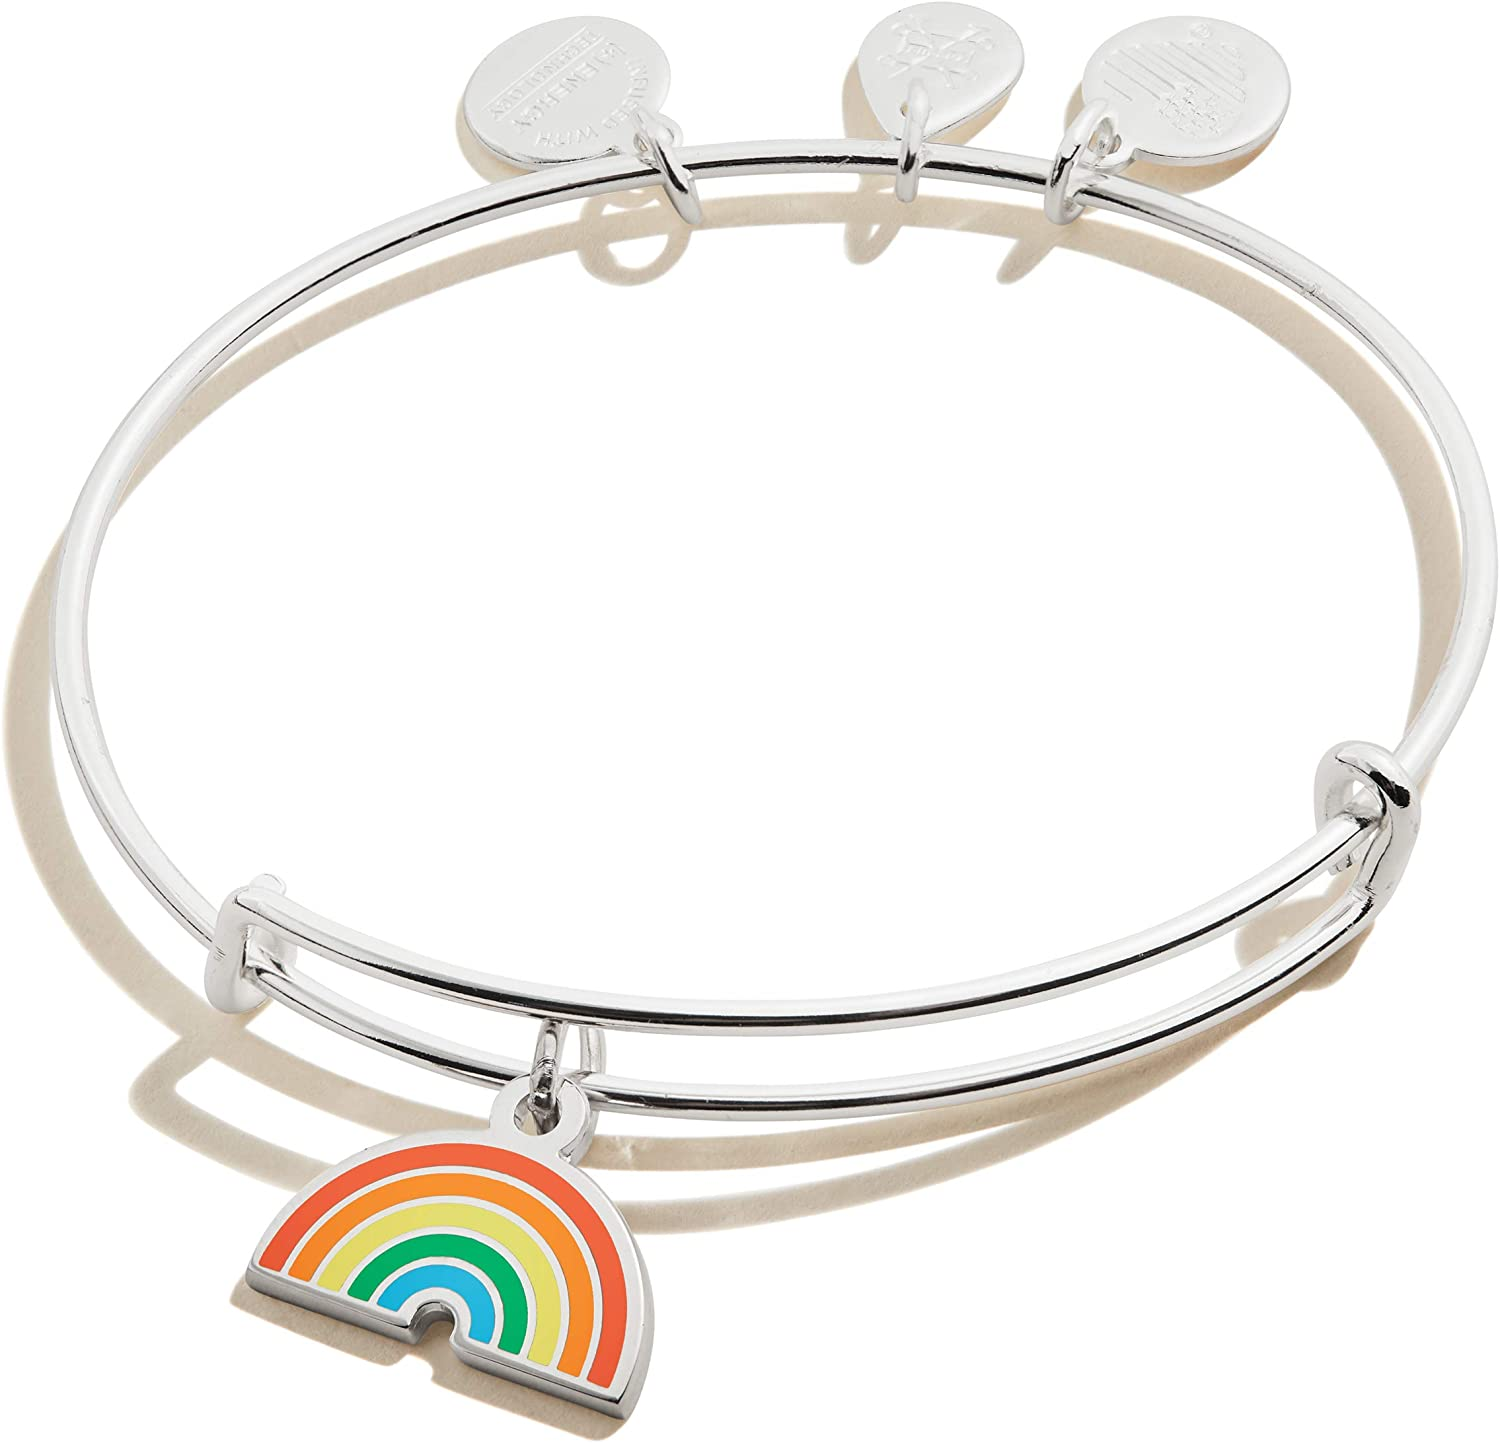 Alex and Ani Path of Symbols Expandable Bangle for Women, Rainbow Charm, Shiny Finish, 2 to 3.5 in